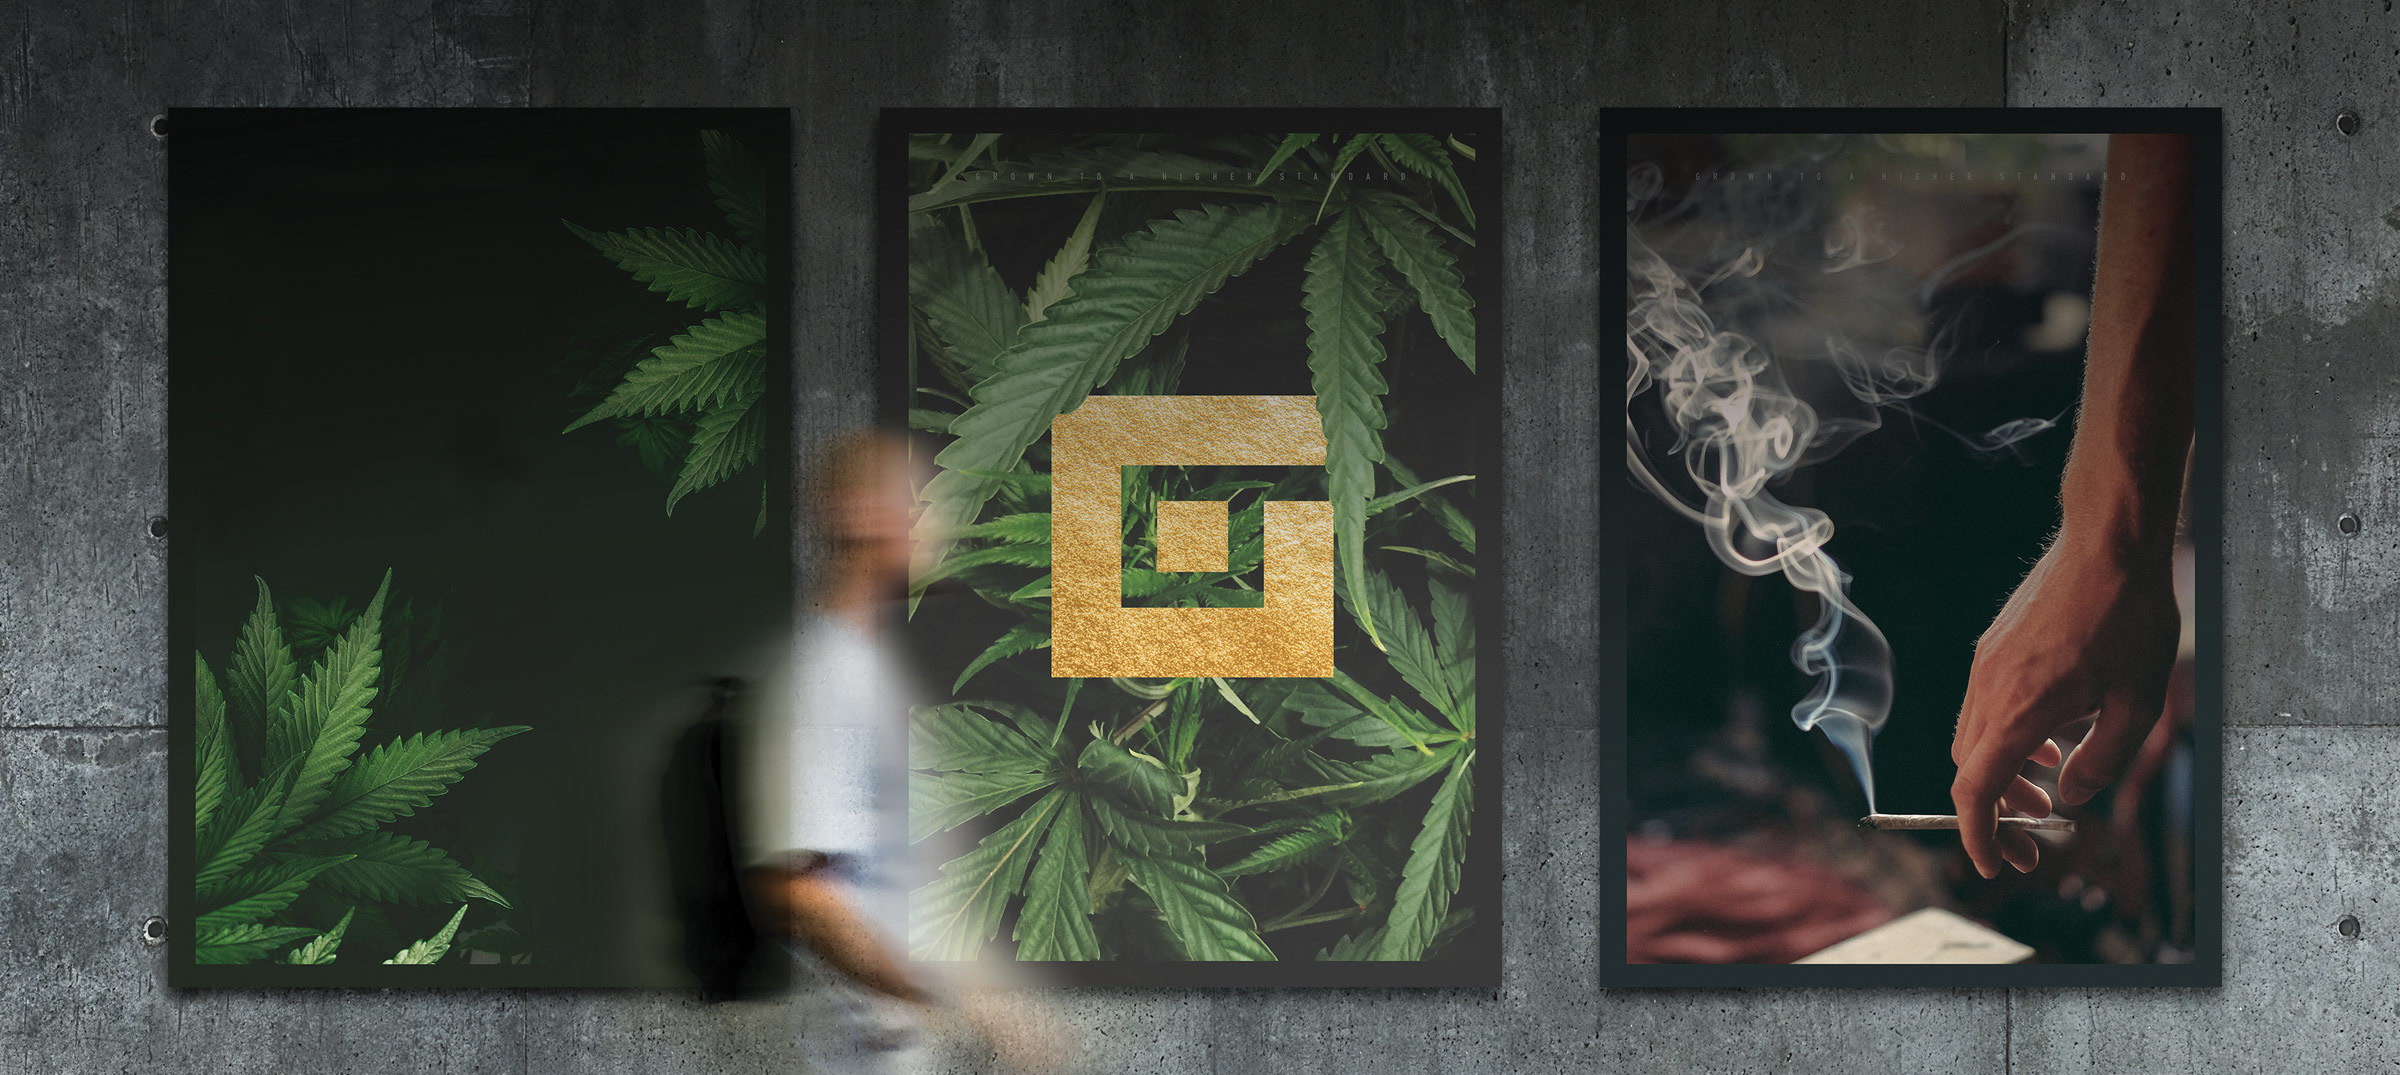 Gifted Grower brand design, branding, posters